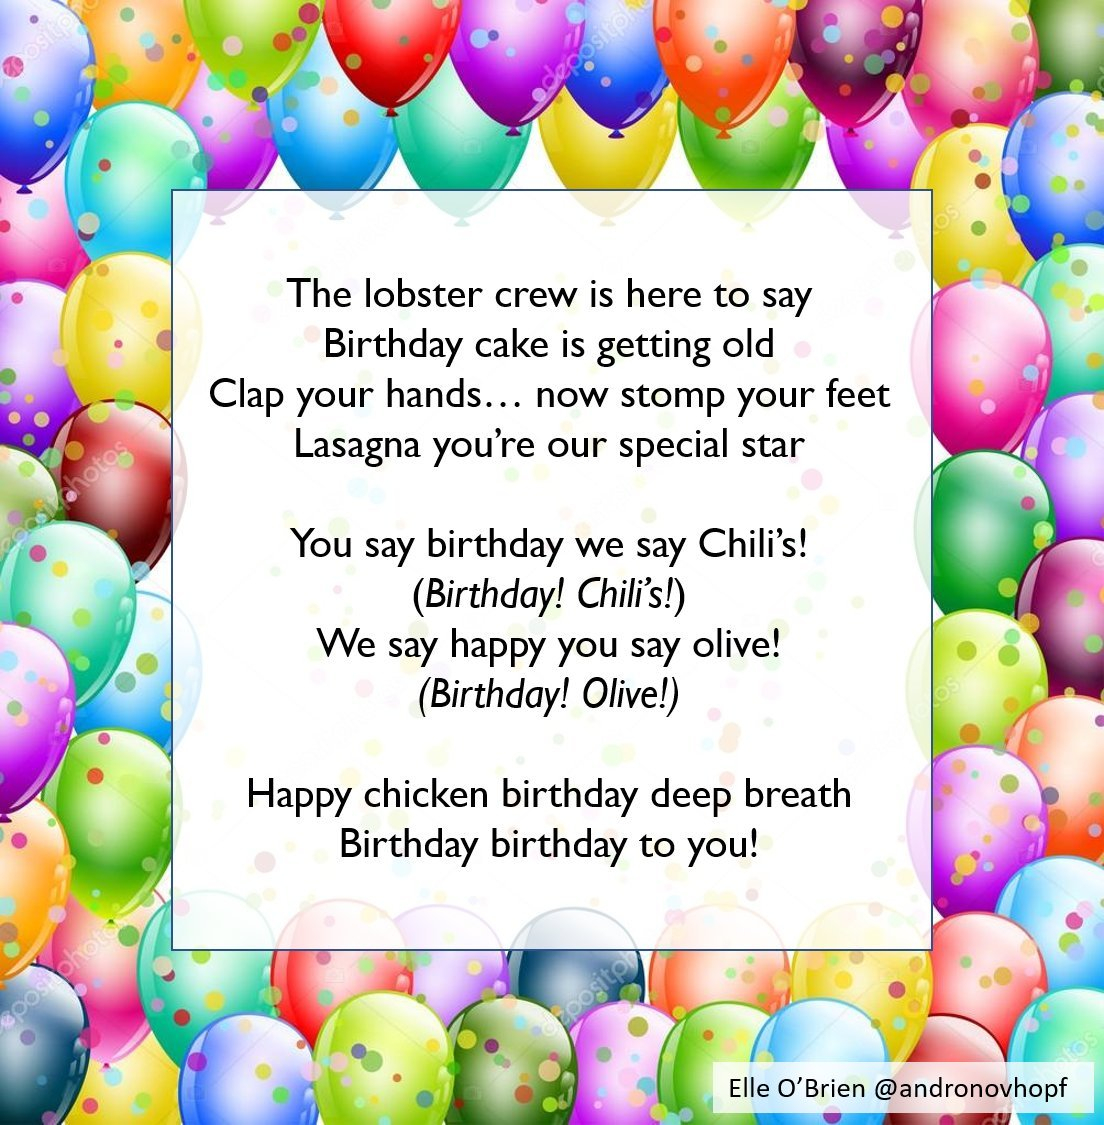 Olive Garden Birthday Cake Wrote A Birthday Song Using Botnik Voicebox Mixing The Songs From